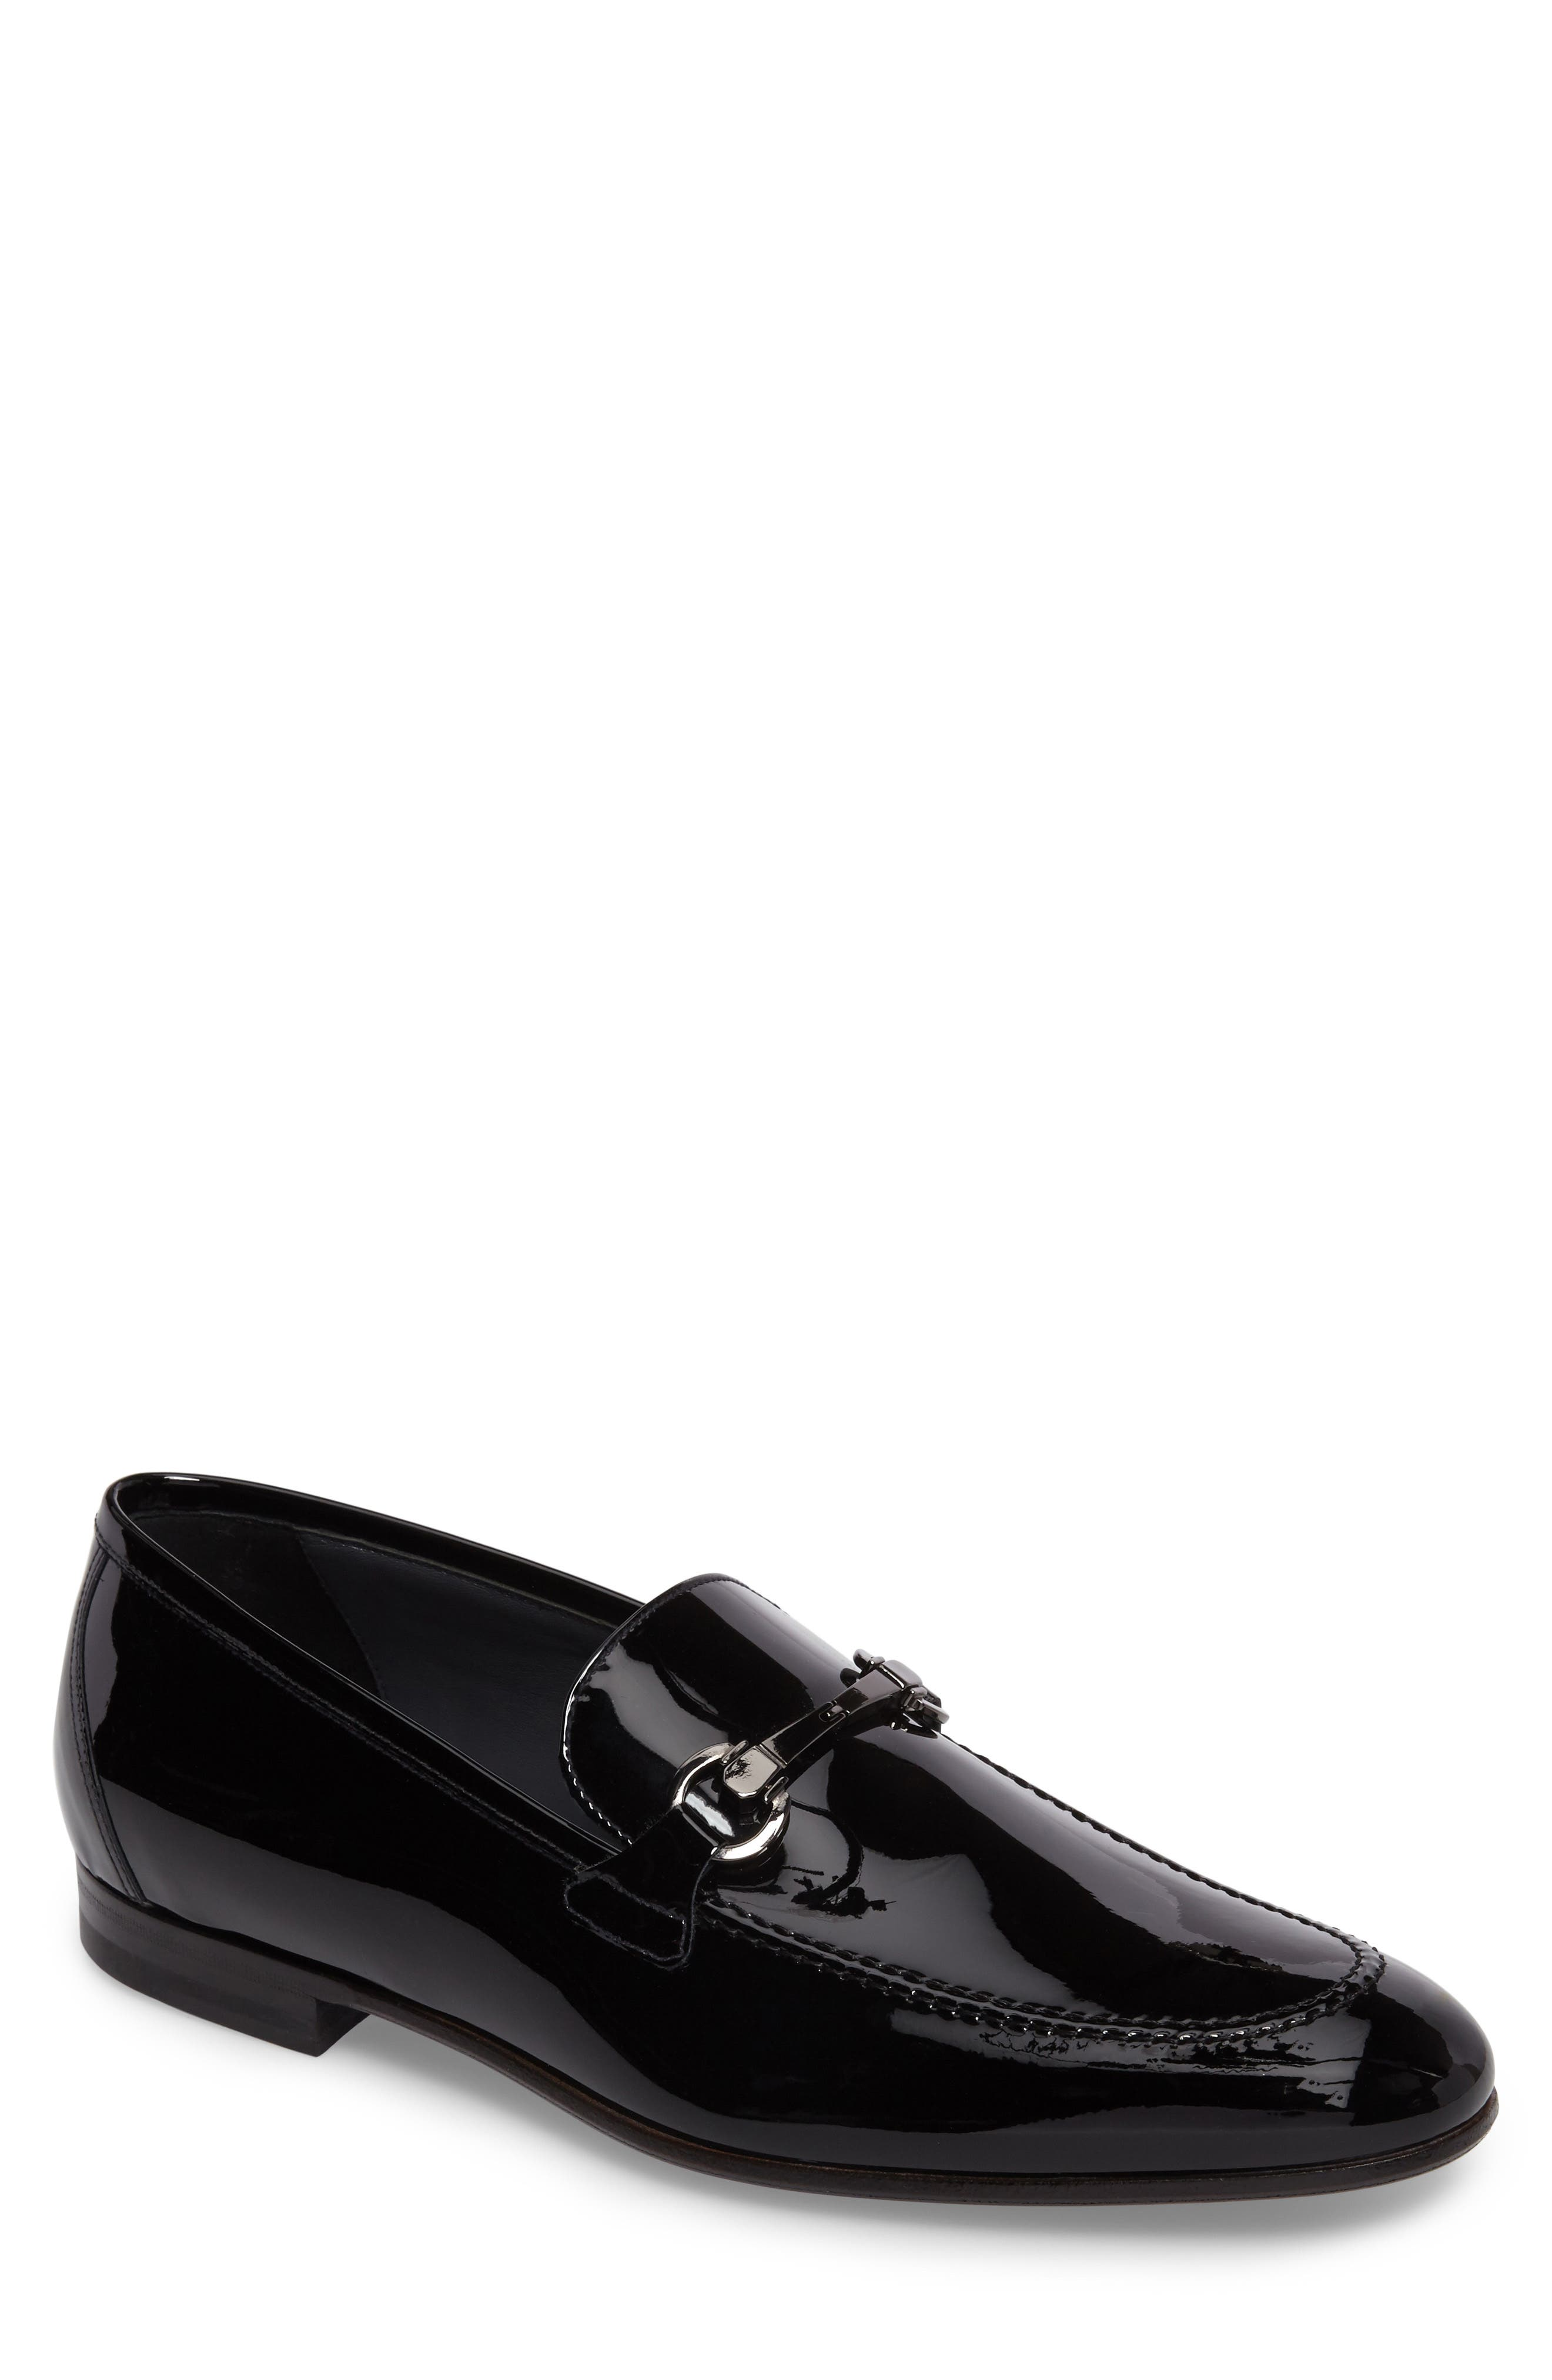 Brianza Bit Loafer,                             Main thumbnail 1, color,                             Black Patent Leather